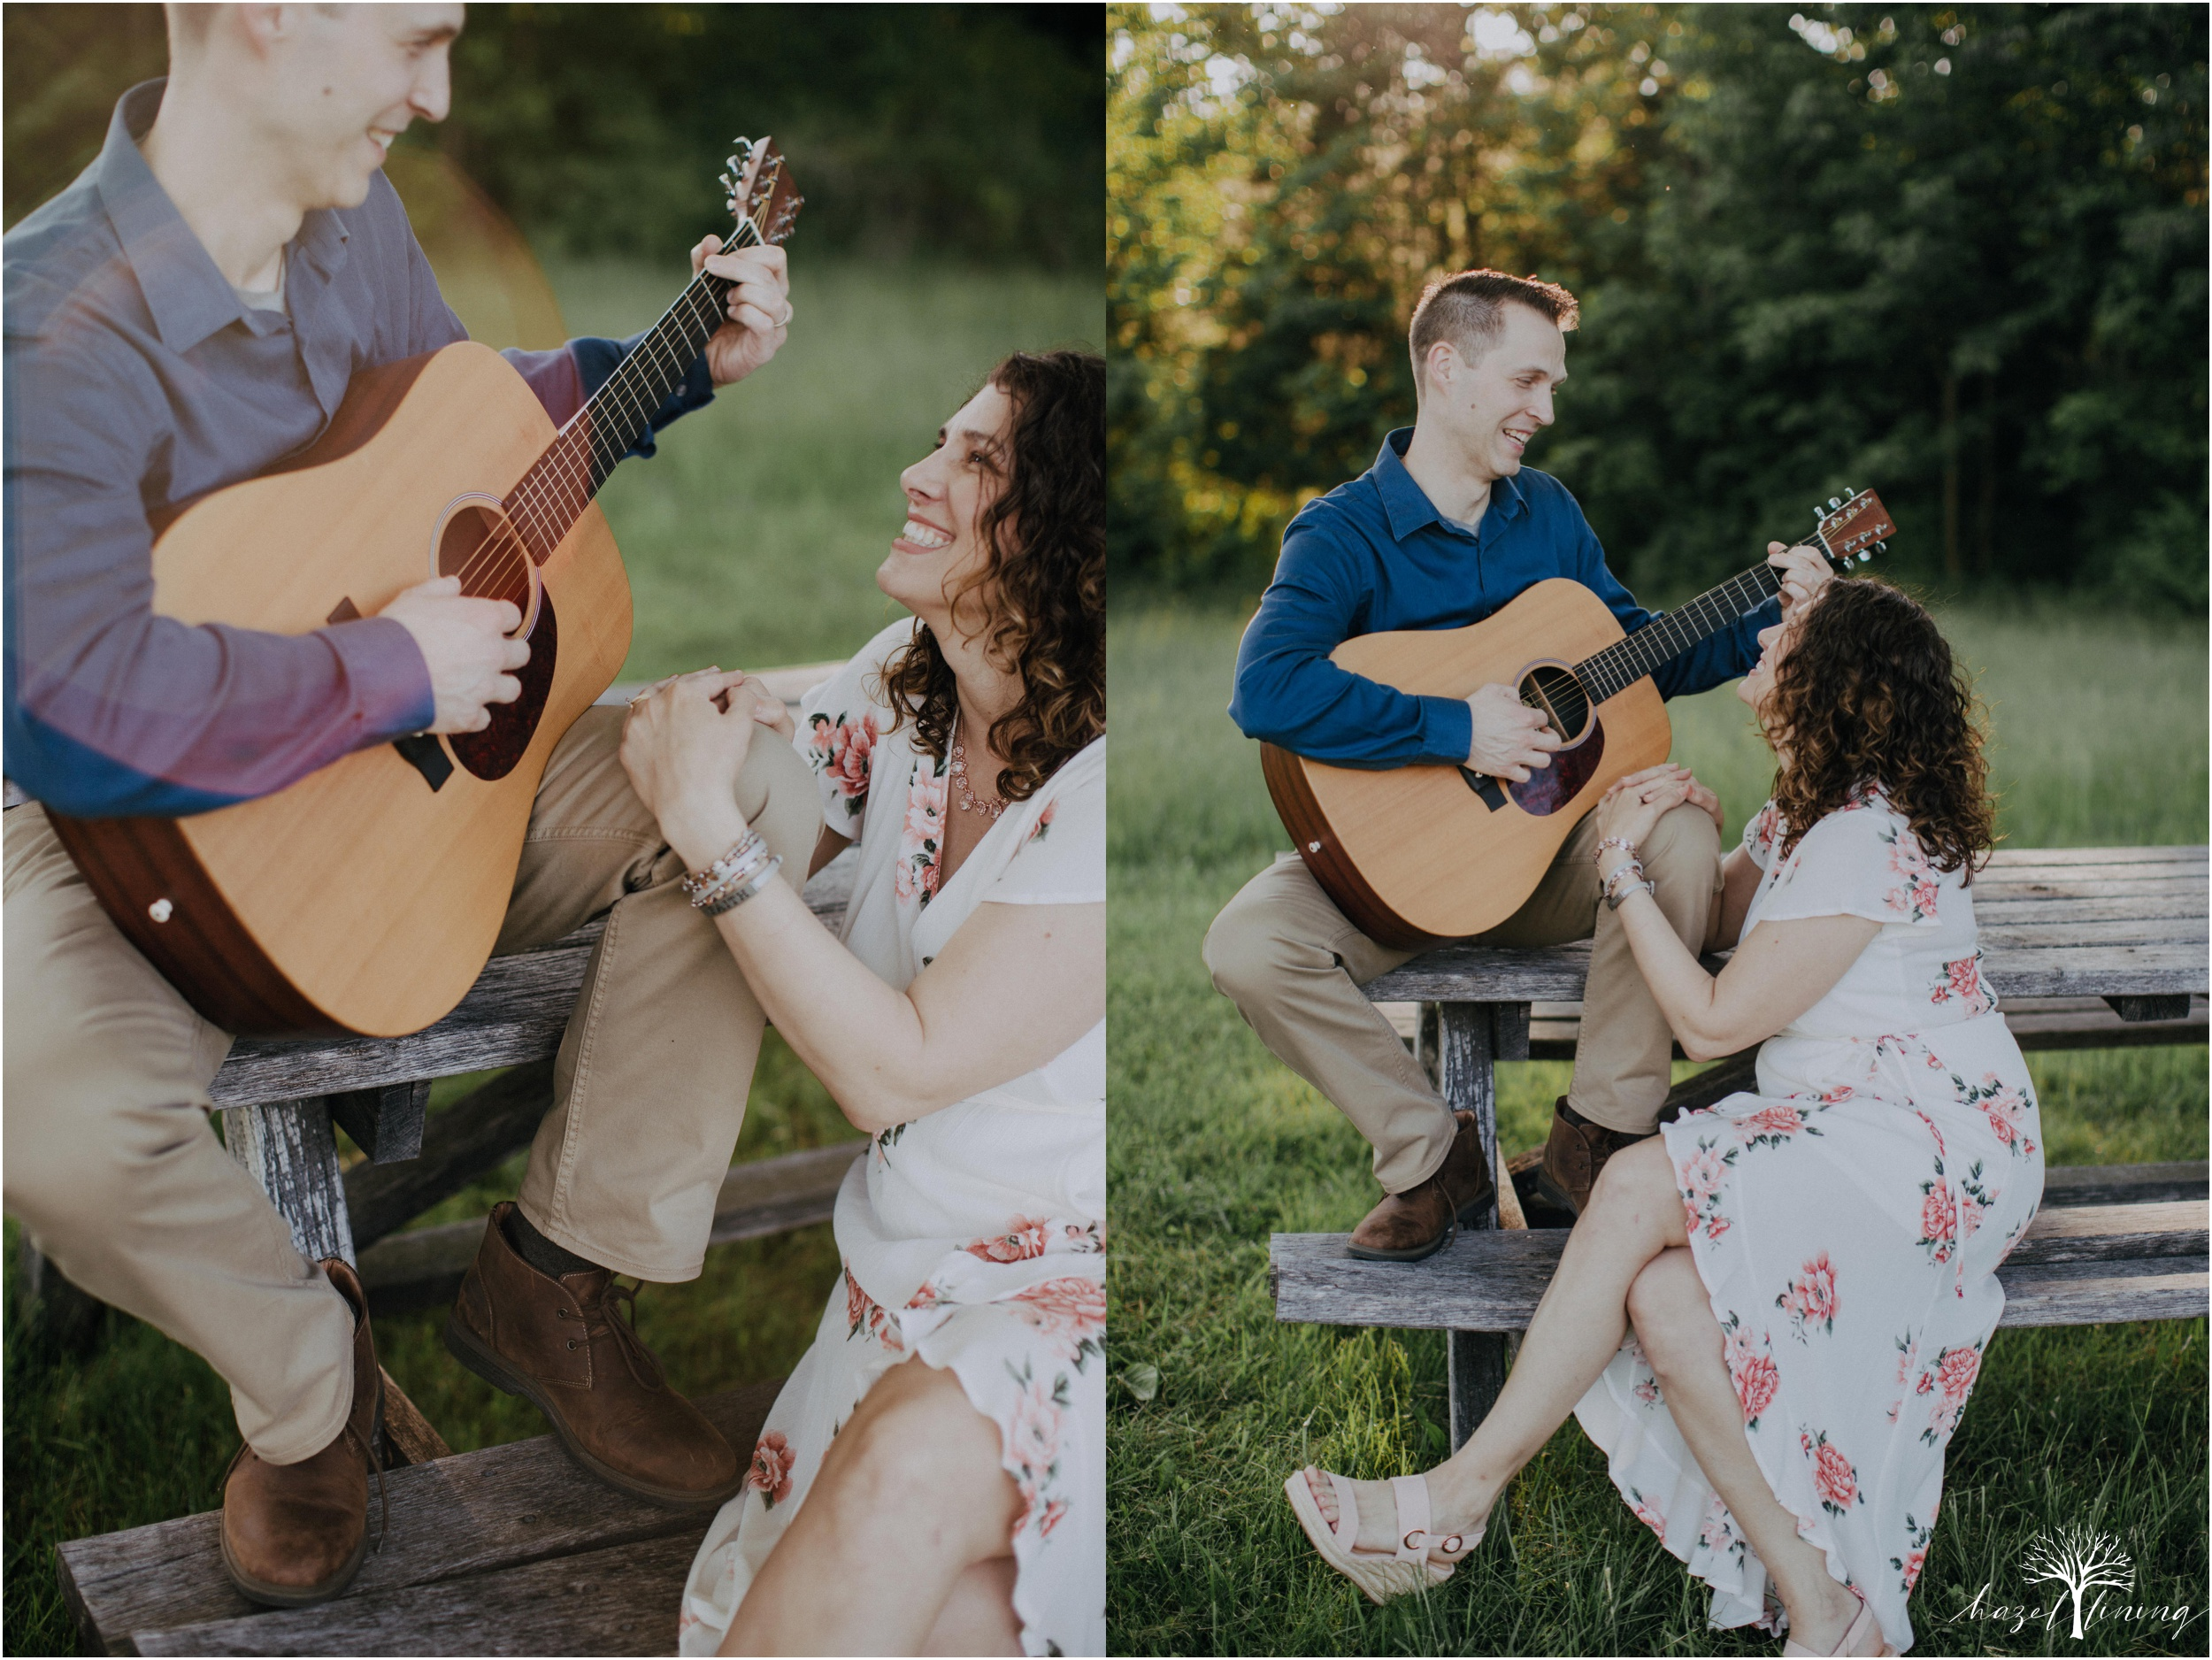 pete-rachelle-sawadski-20-year-anniversary-portrait-session-hazel-lining-photography-destination-elopement-wedding-engagement-photography_0267.jpg